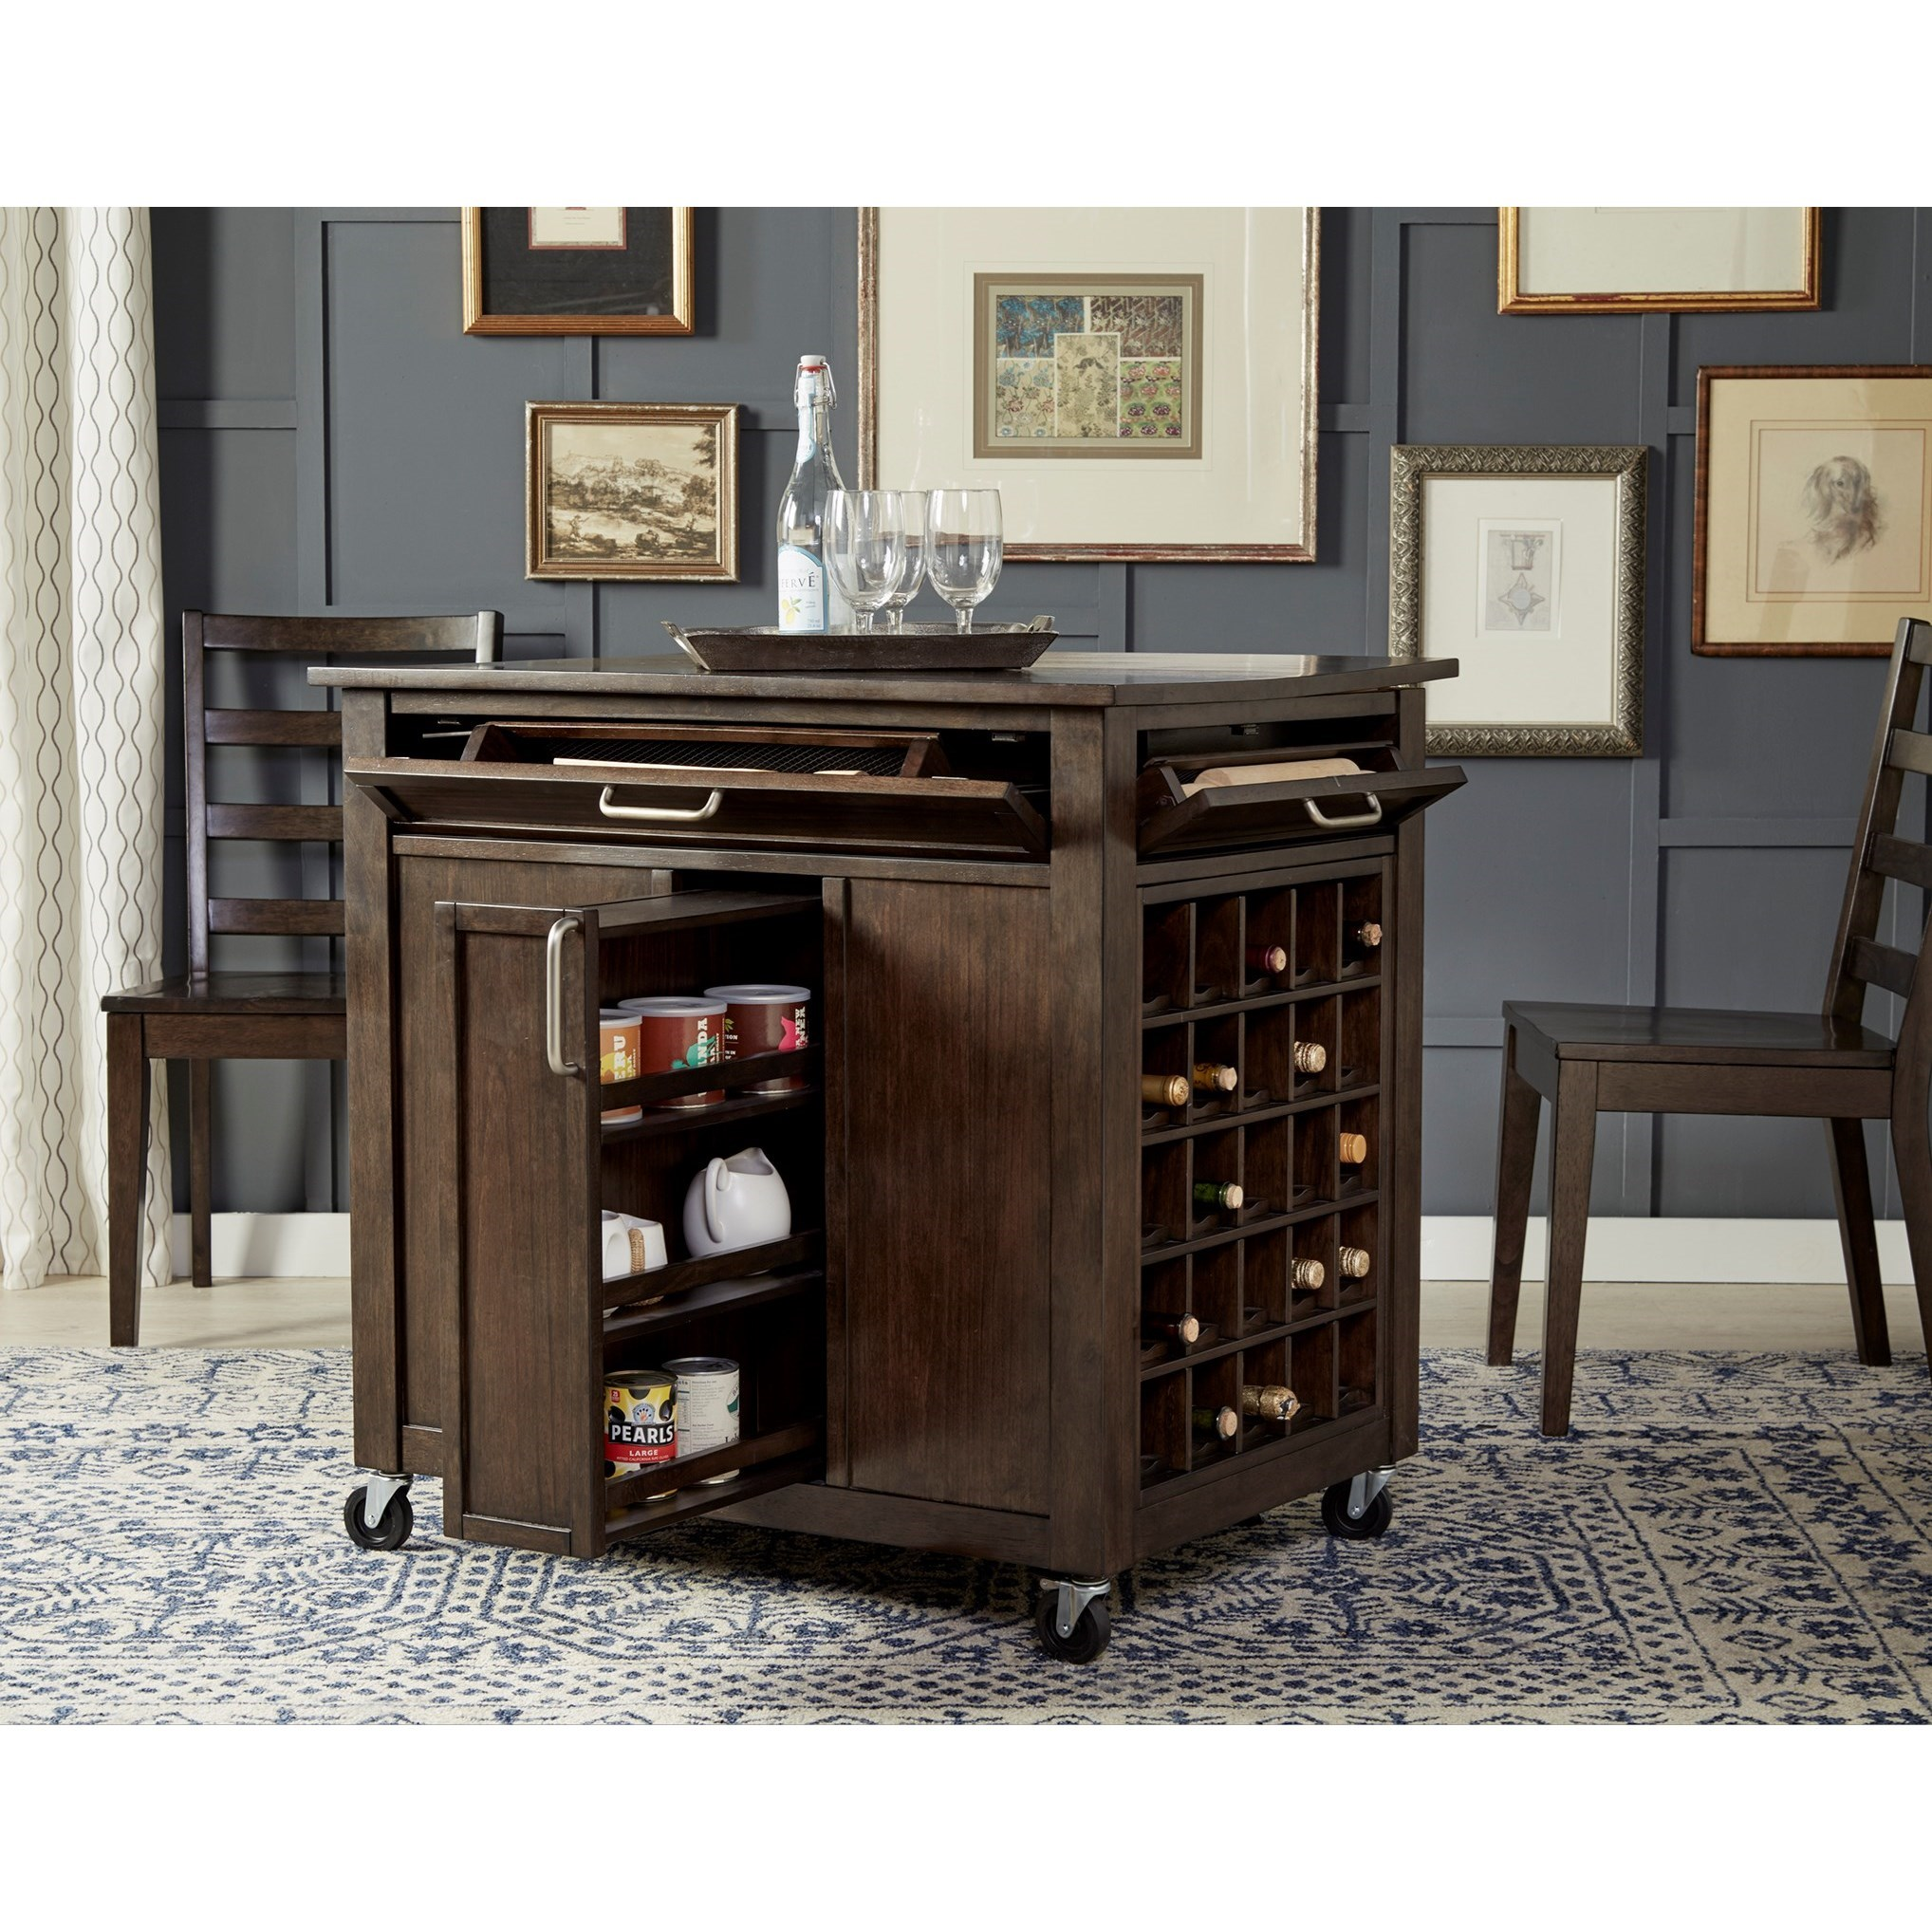 9 Standout Kitchen Islands: AAmerica Brooklyn Heights Kitchen Dining Island With